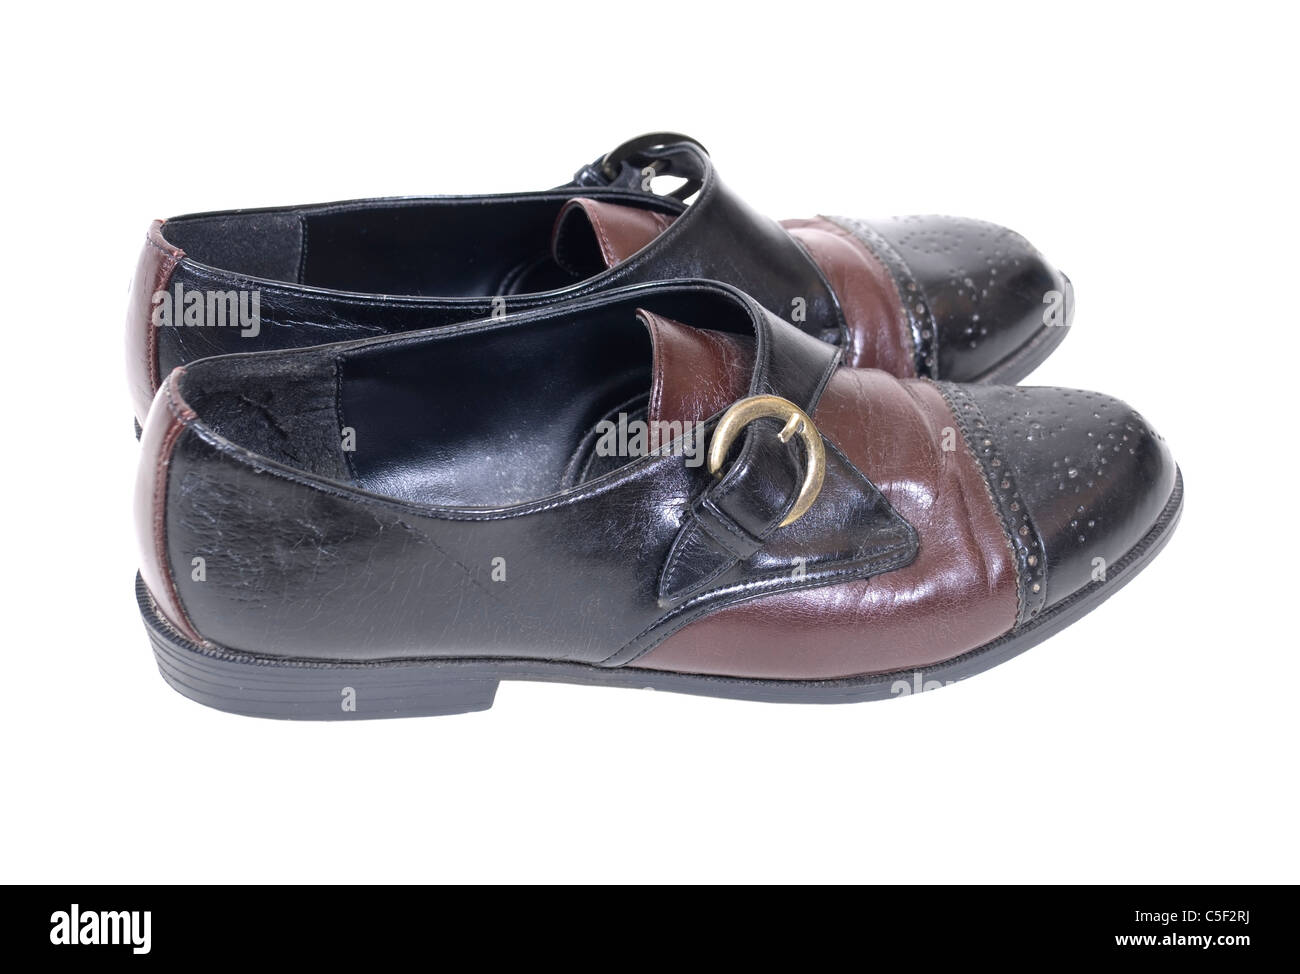 Black and tan leather saddle shoes with metal buckle - path included - Stock Image